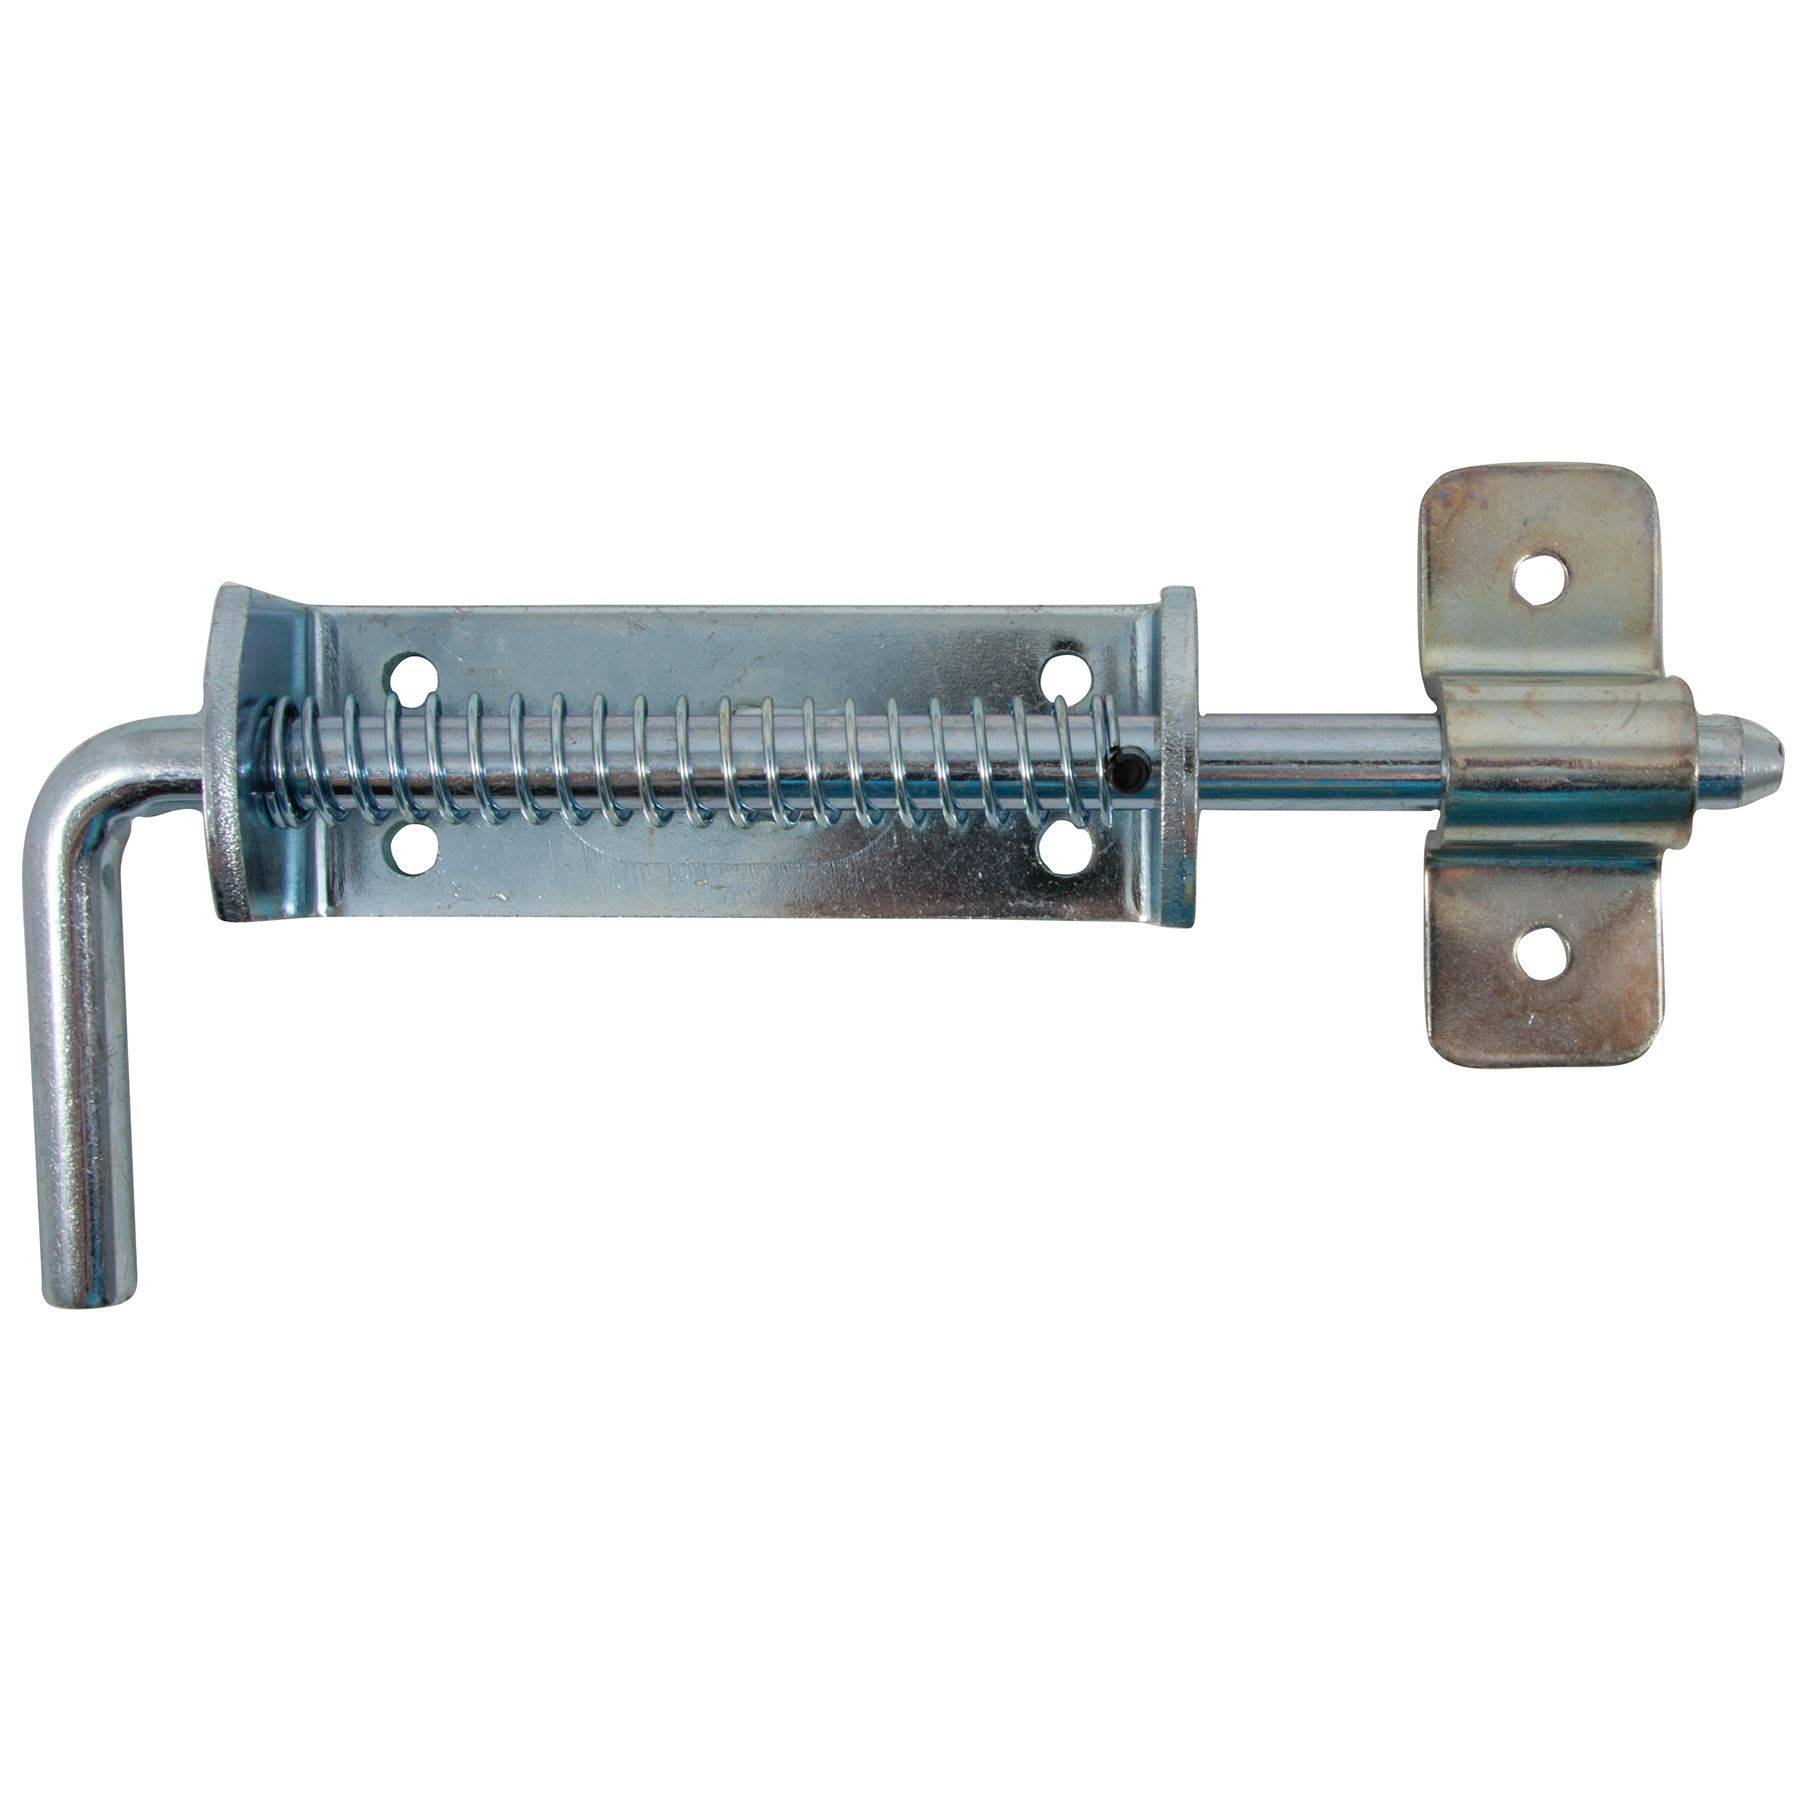 Spring Loaded Door Latch 30 000 Garage Door Repair